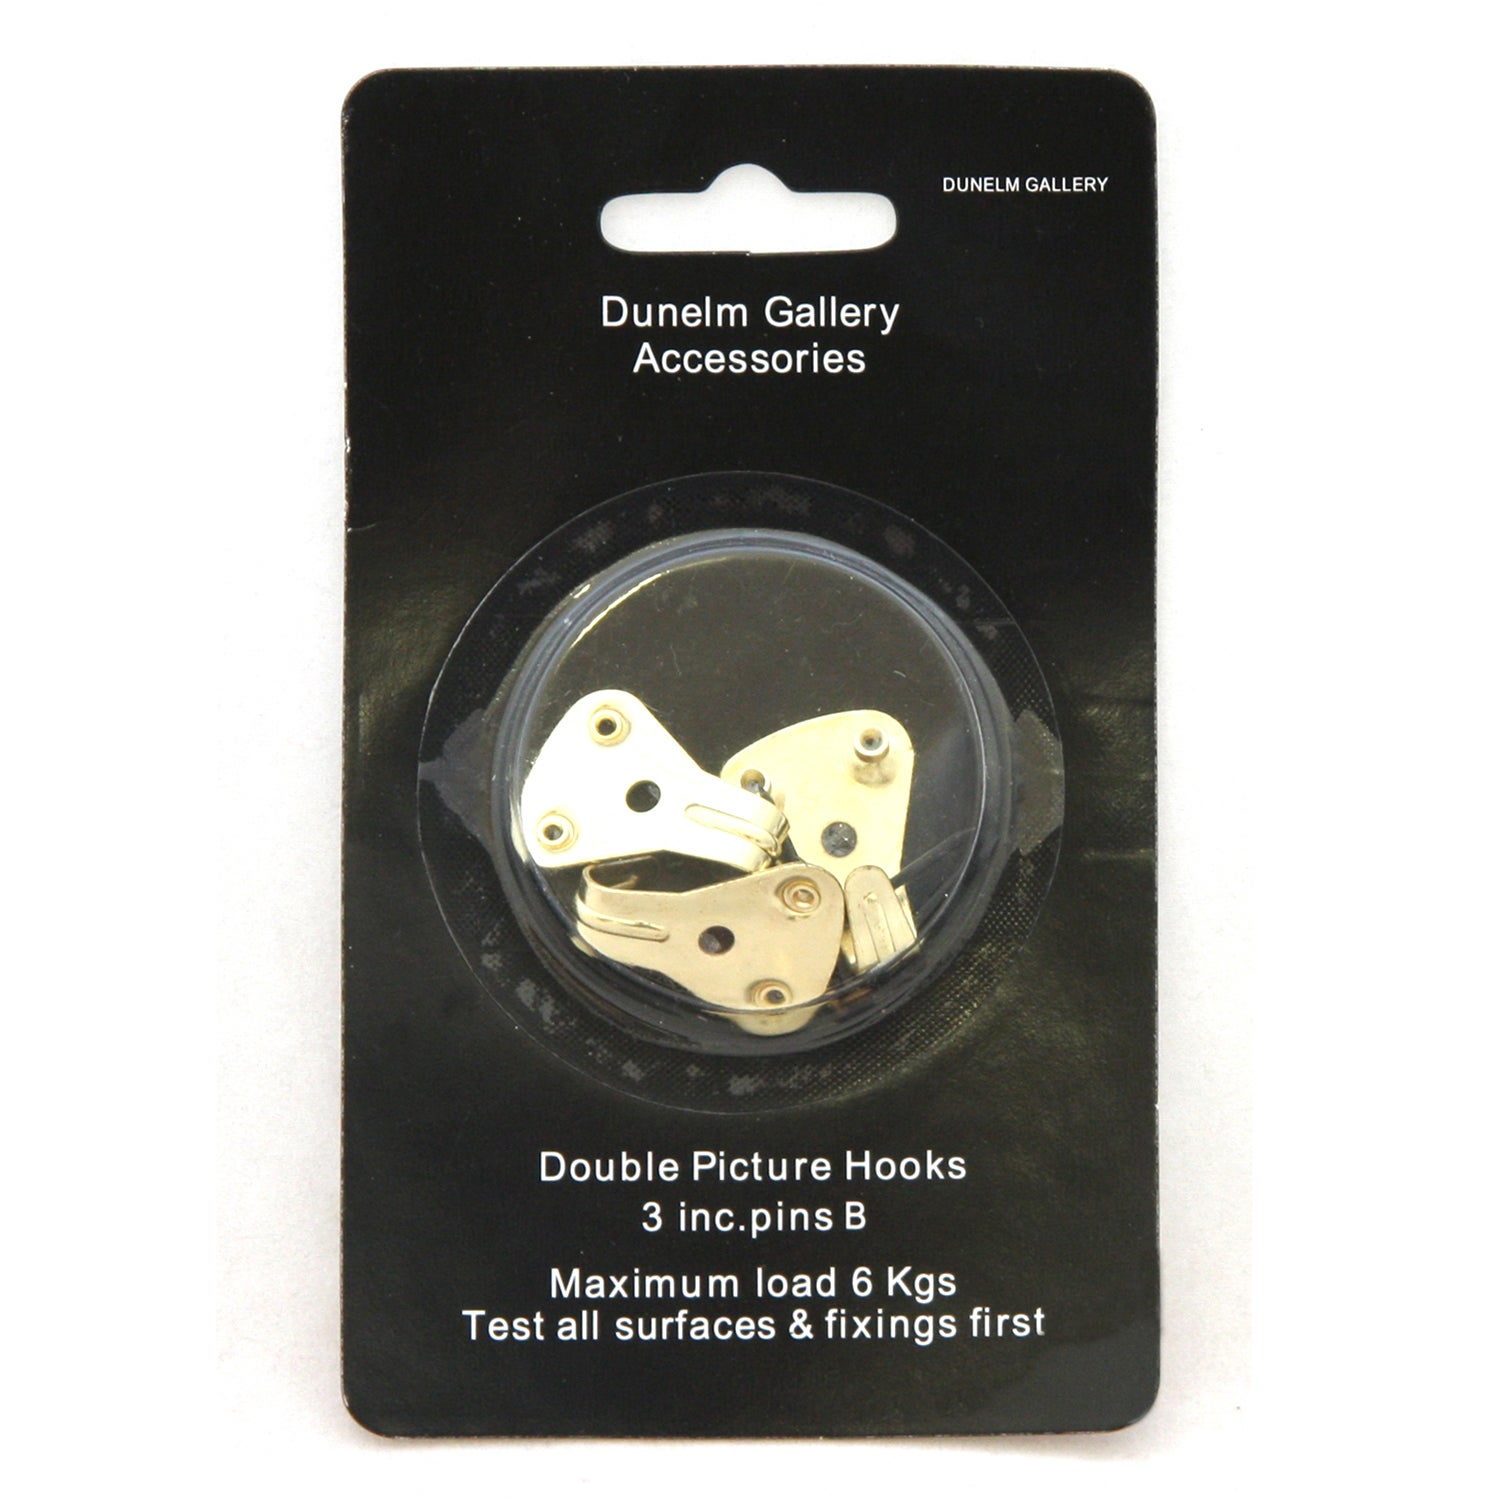 Pack of 3 Double Picture Hooks with Pins